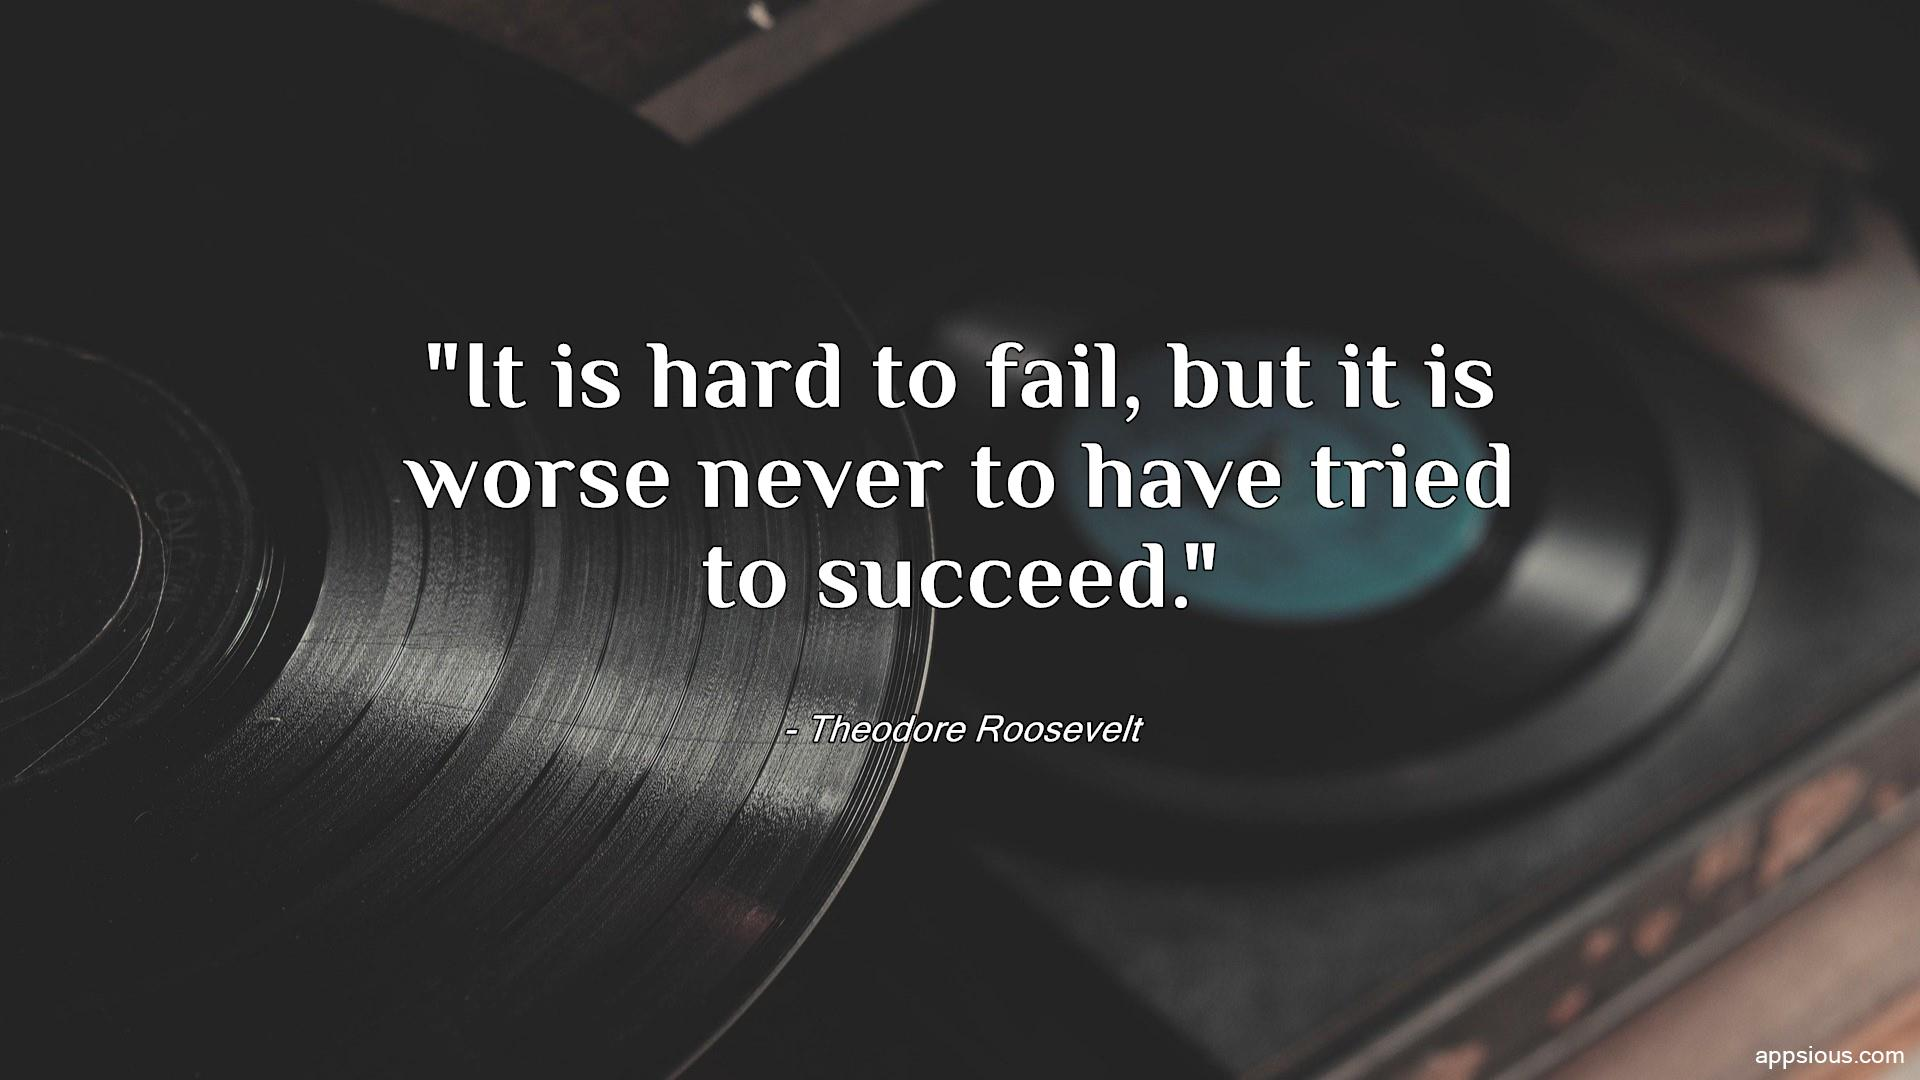 It is hard to fail, but it is worse never to have tried to succeed.